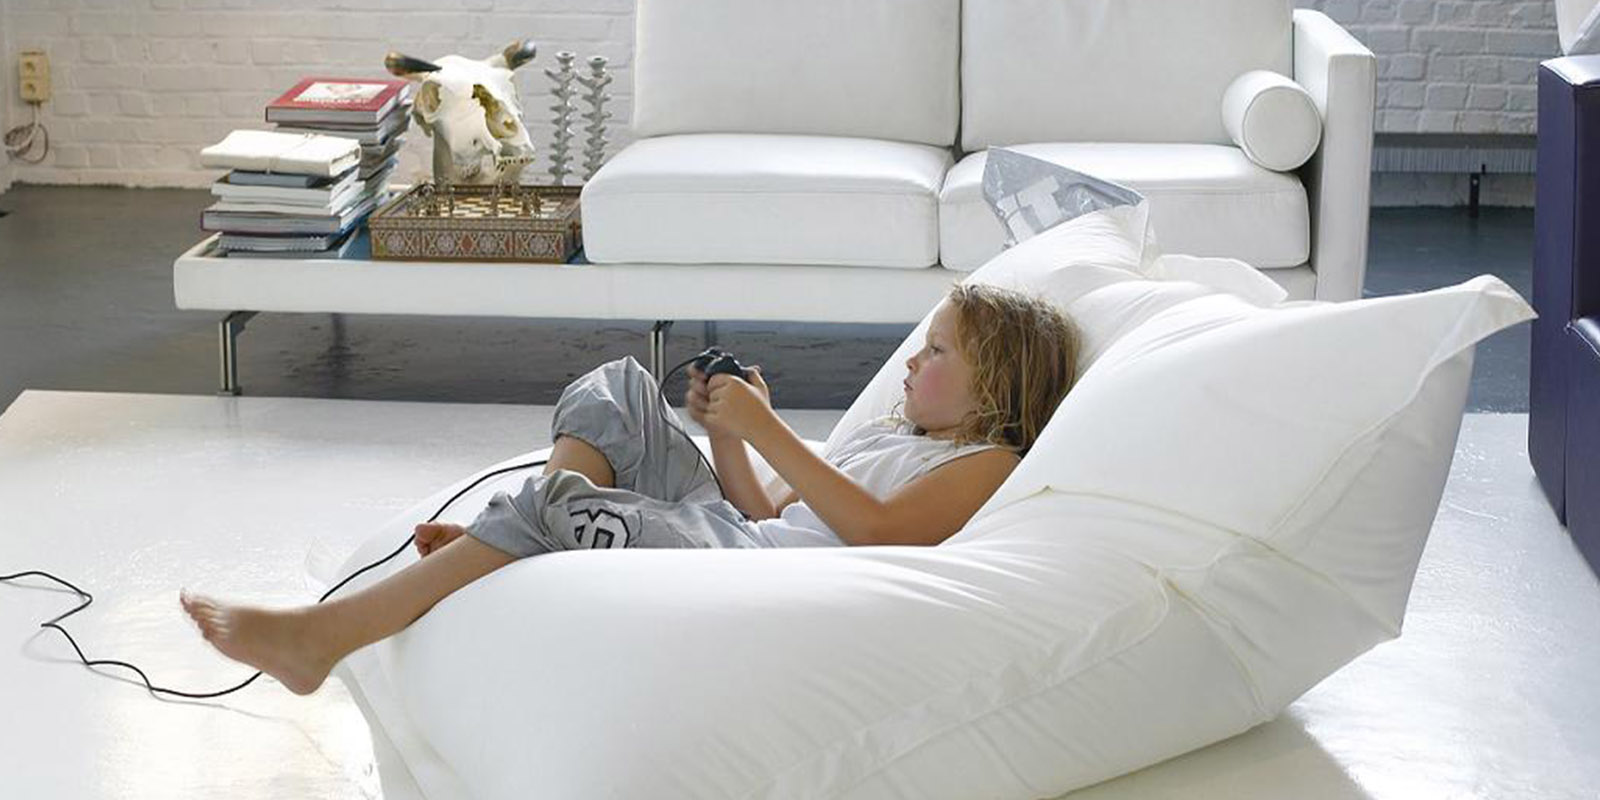 The most relazing atmosphere for kid as the bean bag can be bed and chair at the same time